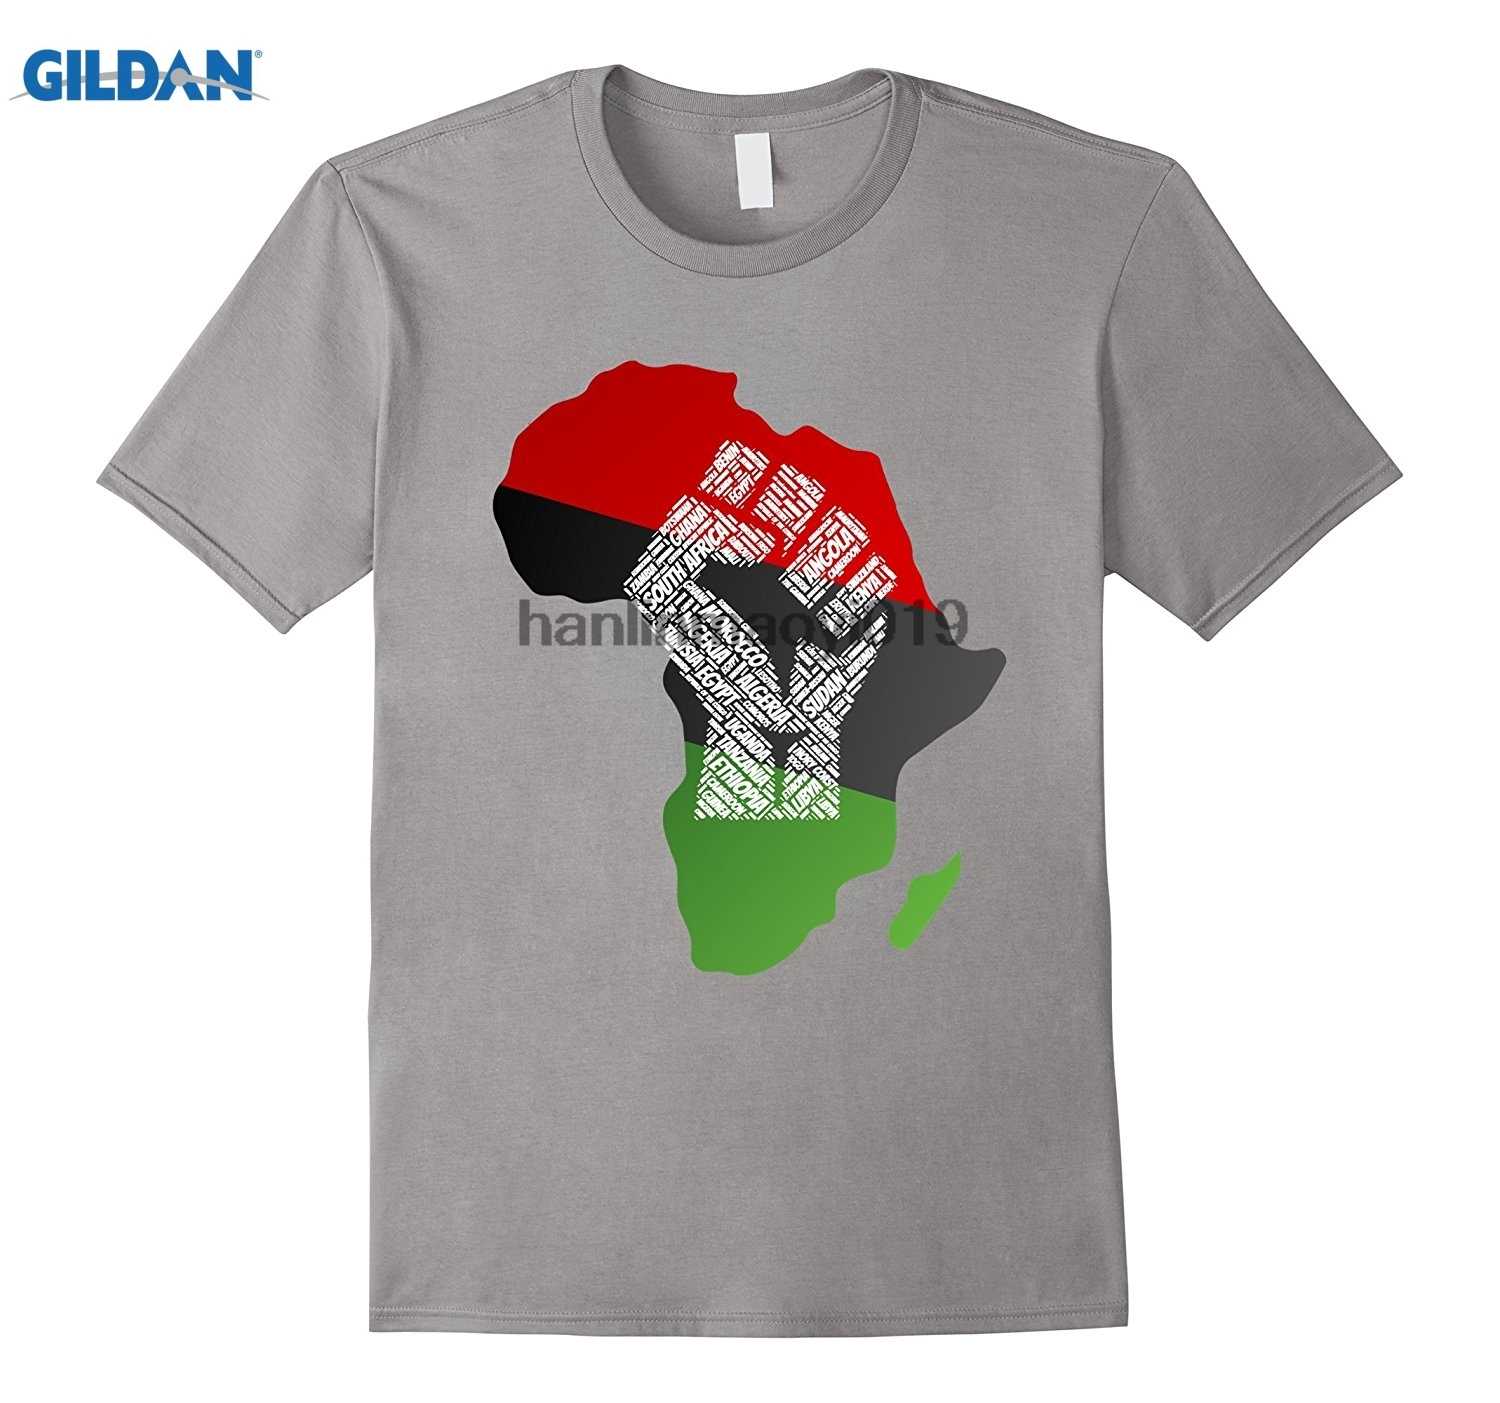 GILDAN Pan African Flag Shirt Antifa Fist UNIA United Black Tee